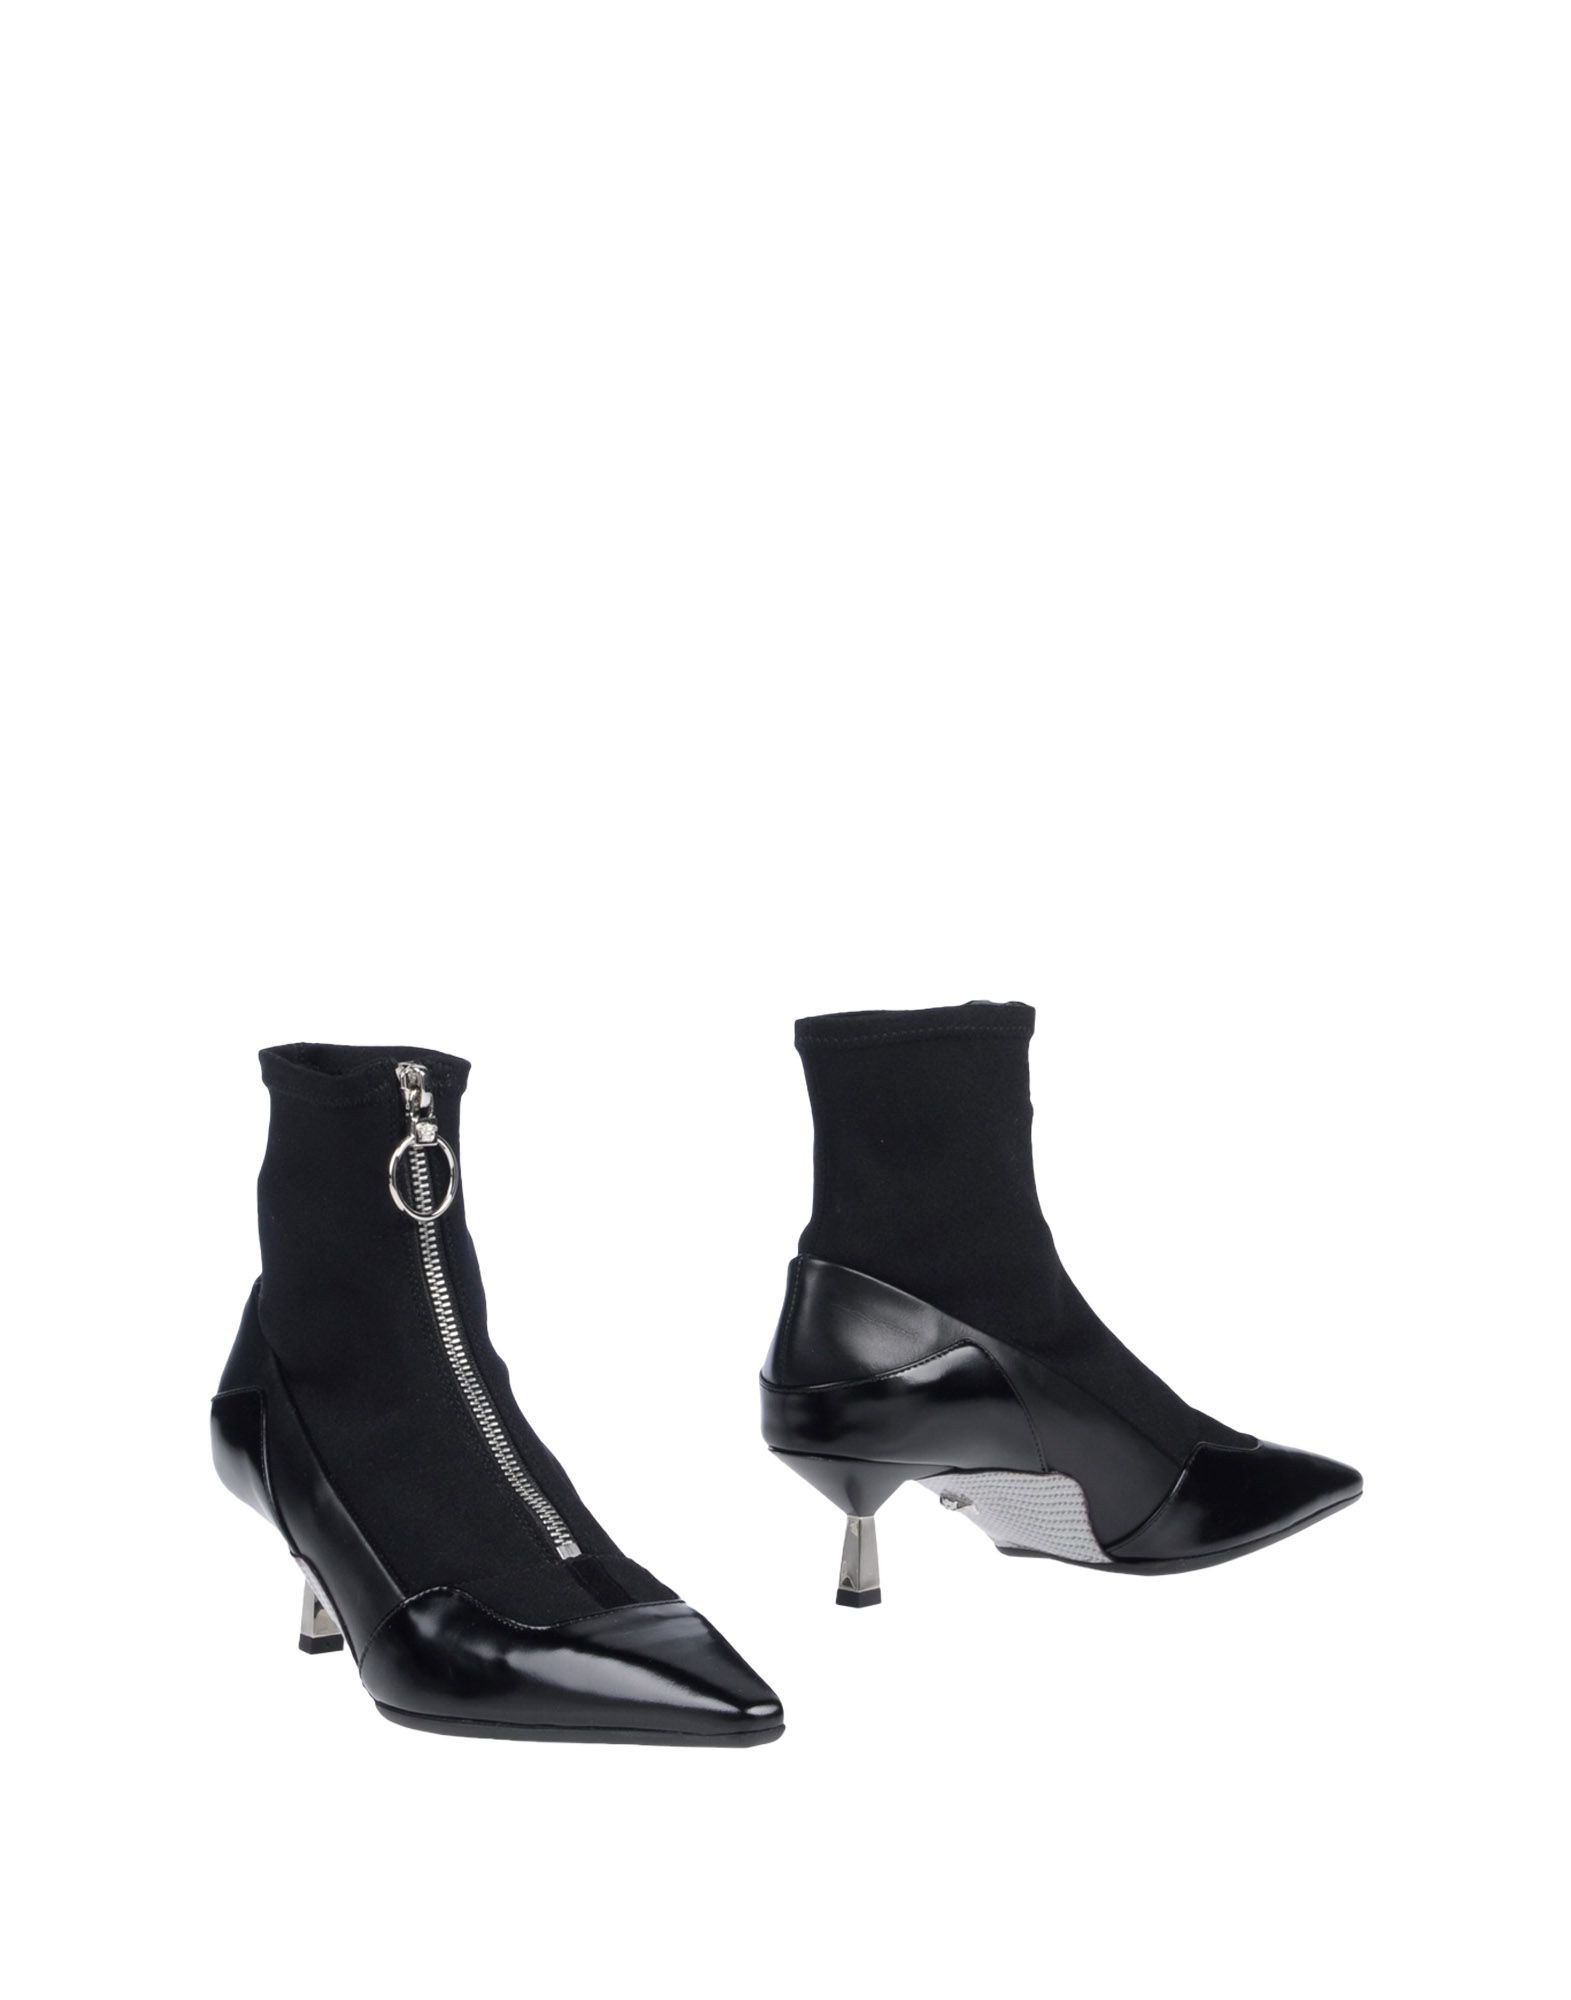 Bottine Versace Femme - Bottines Versace sur